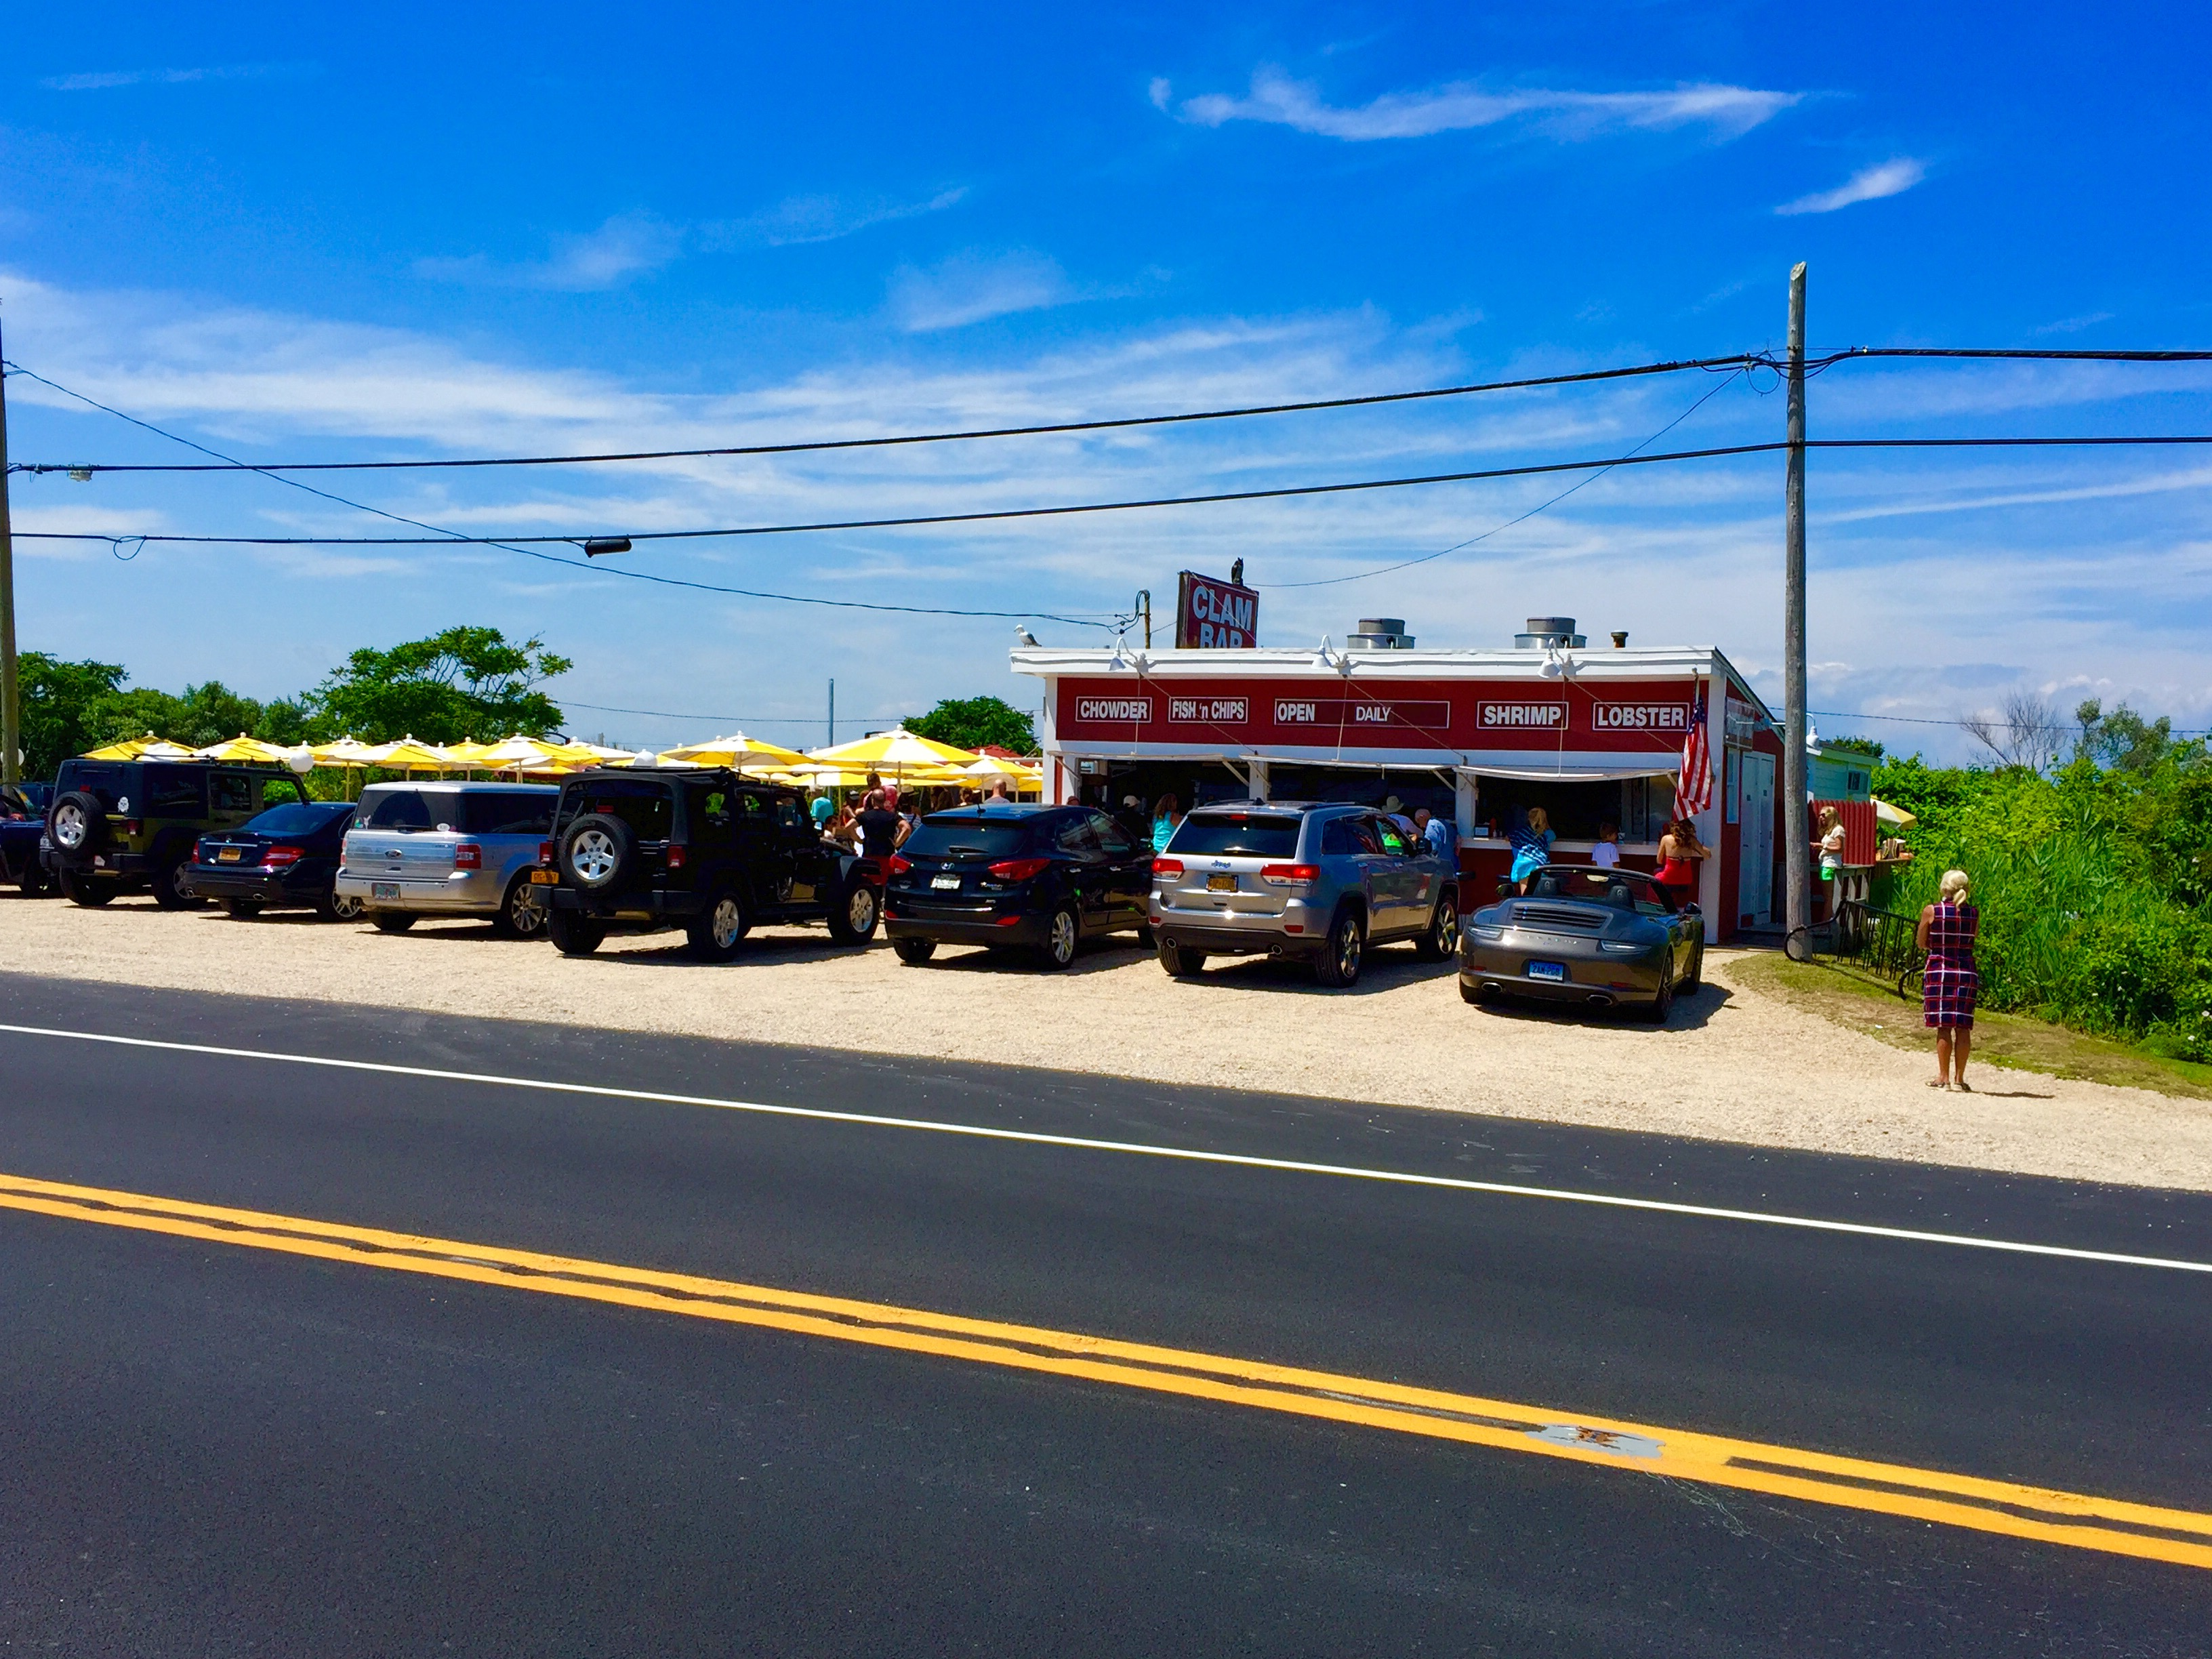 The Clam Bar: Last chance for seafood on Rt. 27!